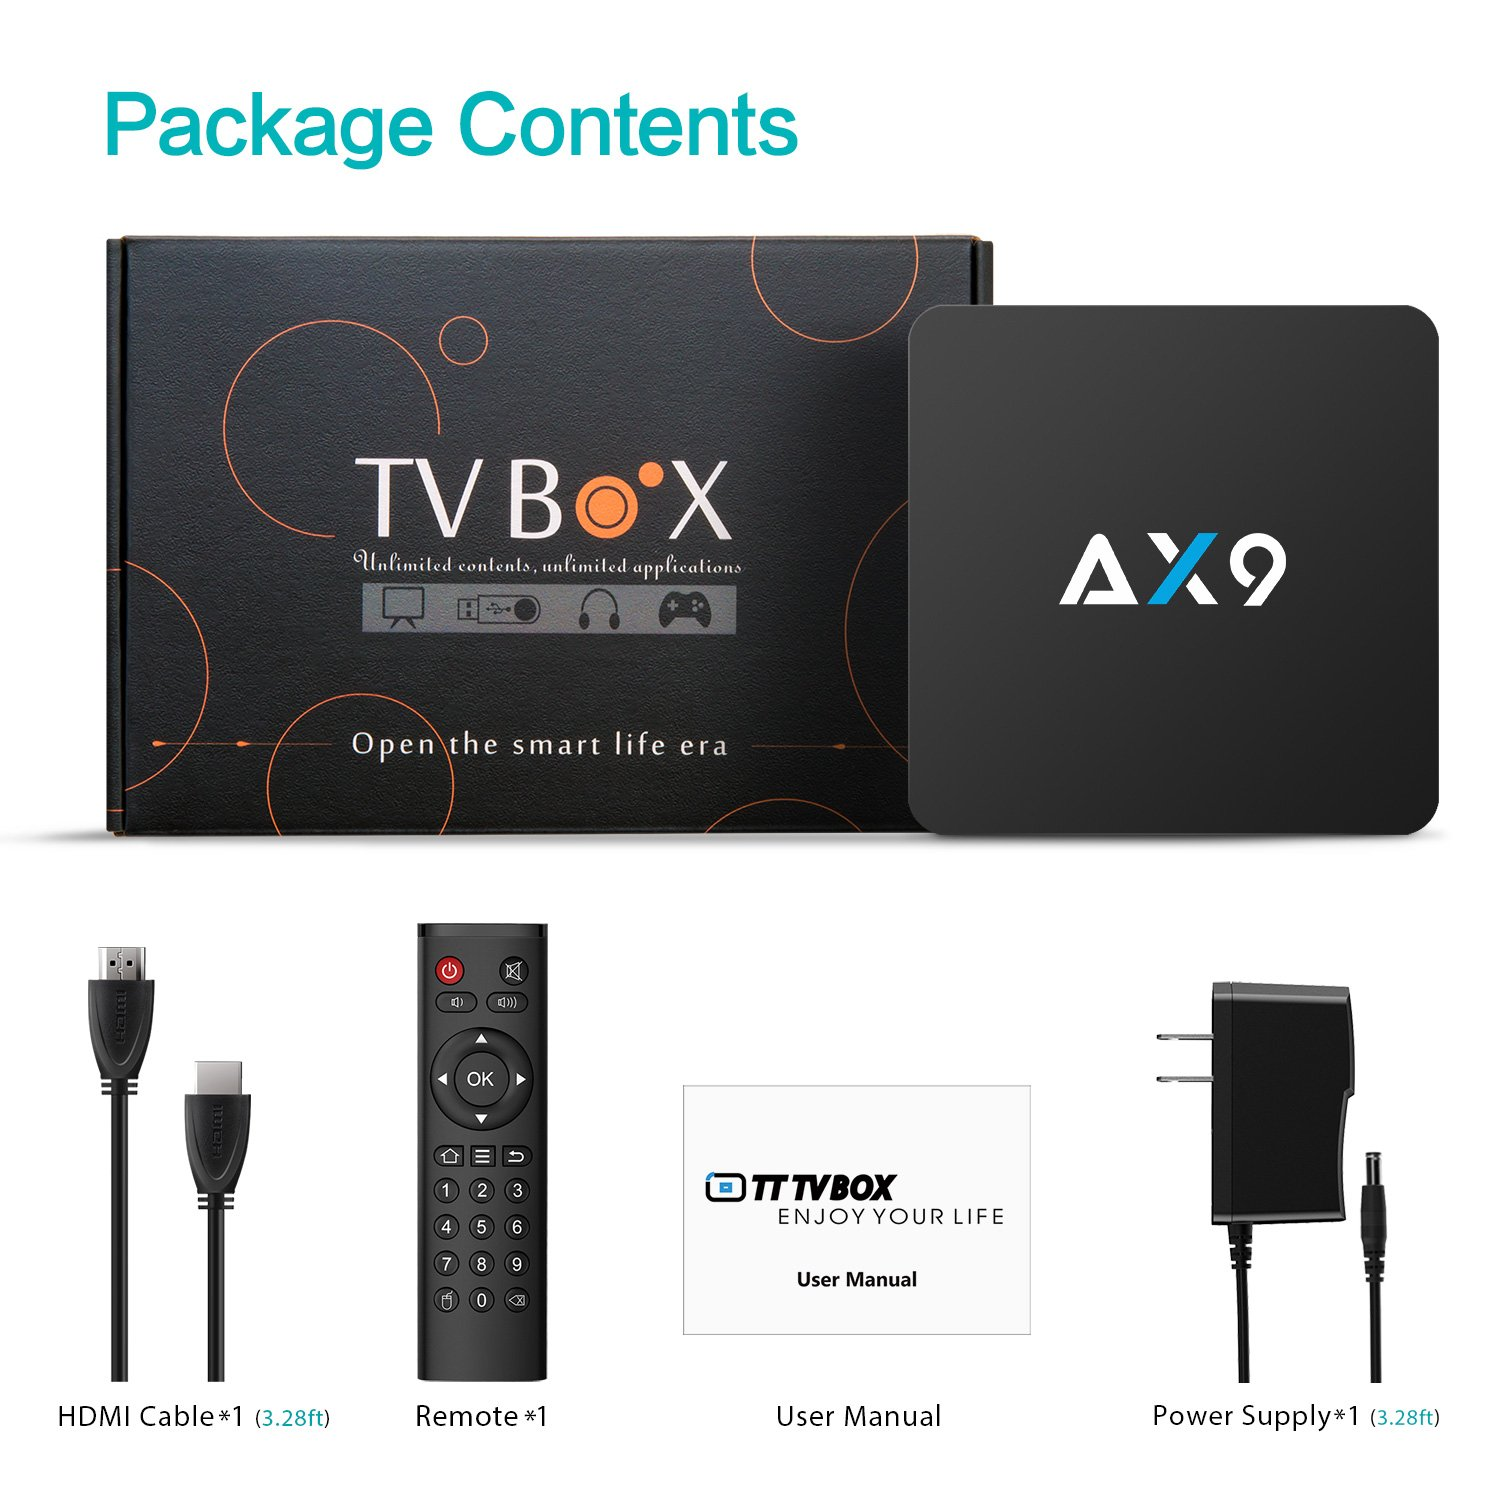 TICTID [1G DDR3/8G EMMC] AX9 Android 7.1 TV Box Amlogic Quad Core A53 Processor 64 Bits Smart TV Box with H.265 HEVC Video Decoder UHD 4k.2k HDMI 2.0 Output 2.4G WiFi Android Box by TICTID (Image #7)